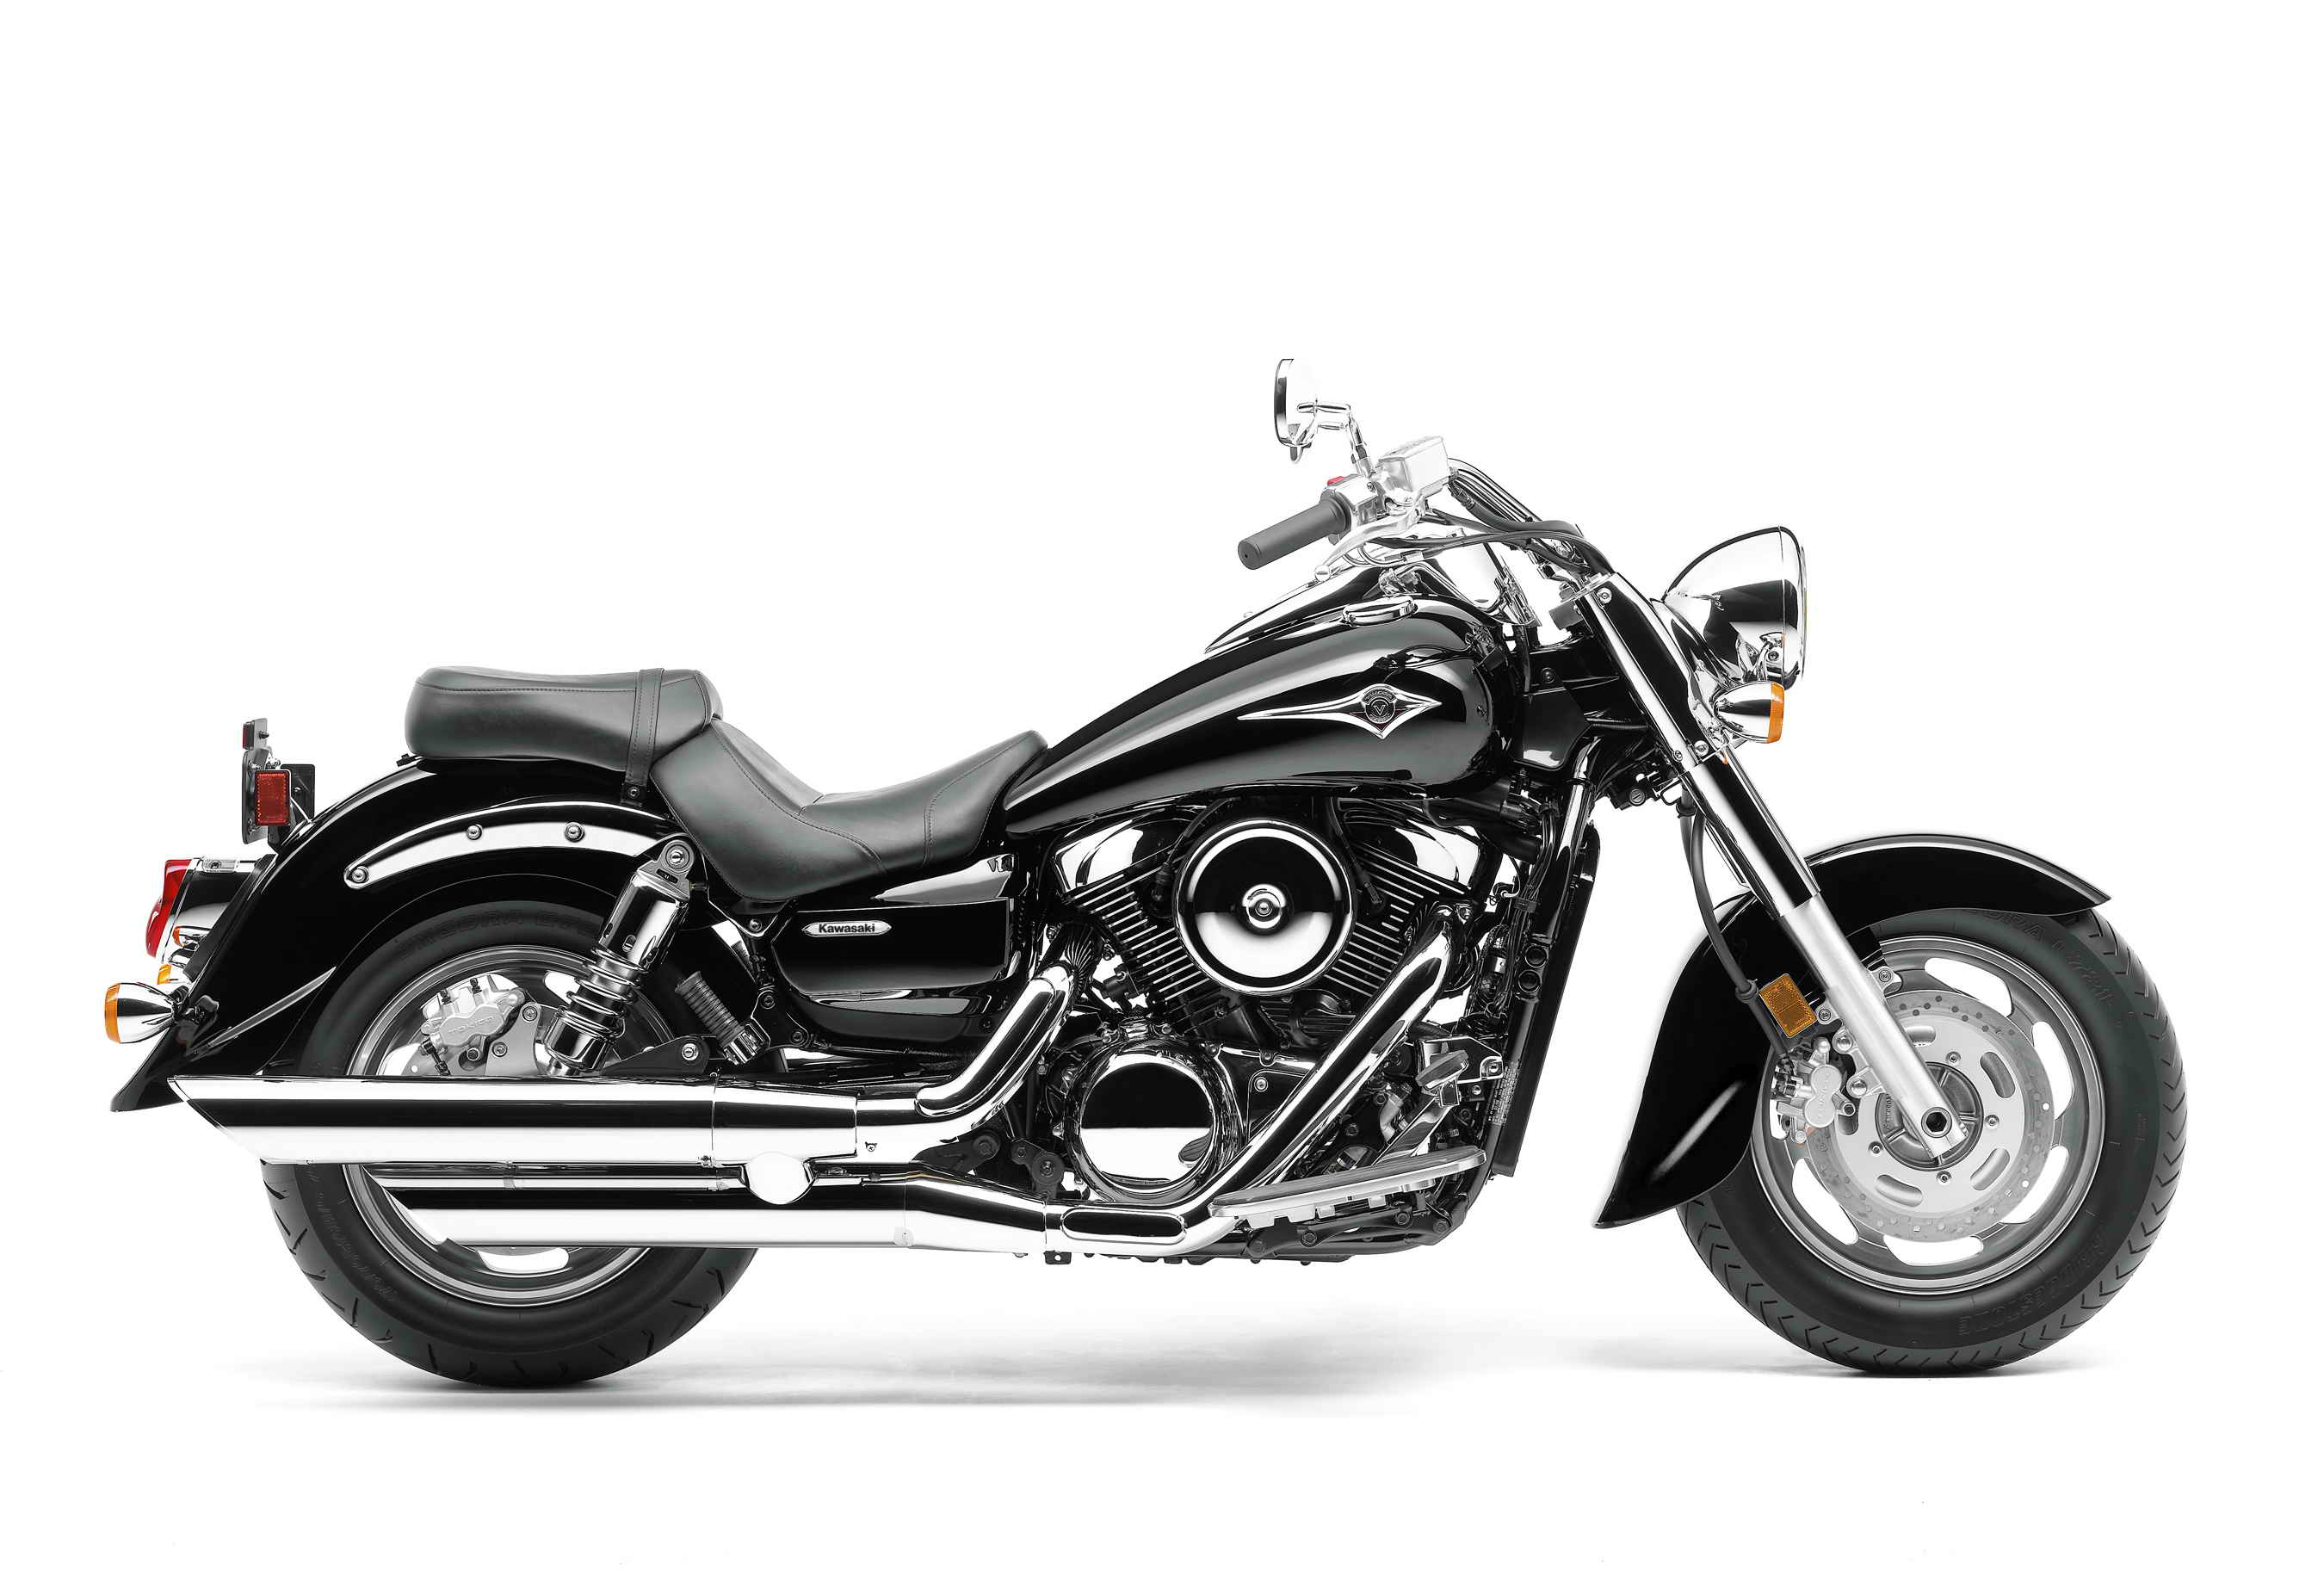 2007 kawasaki vulcan 1500 reviews